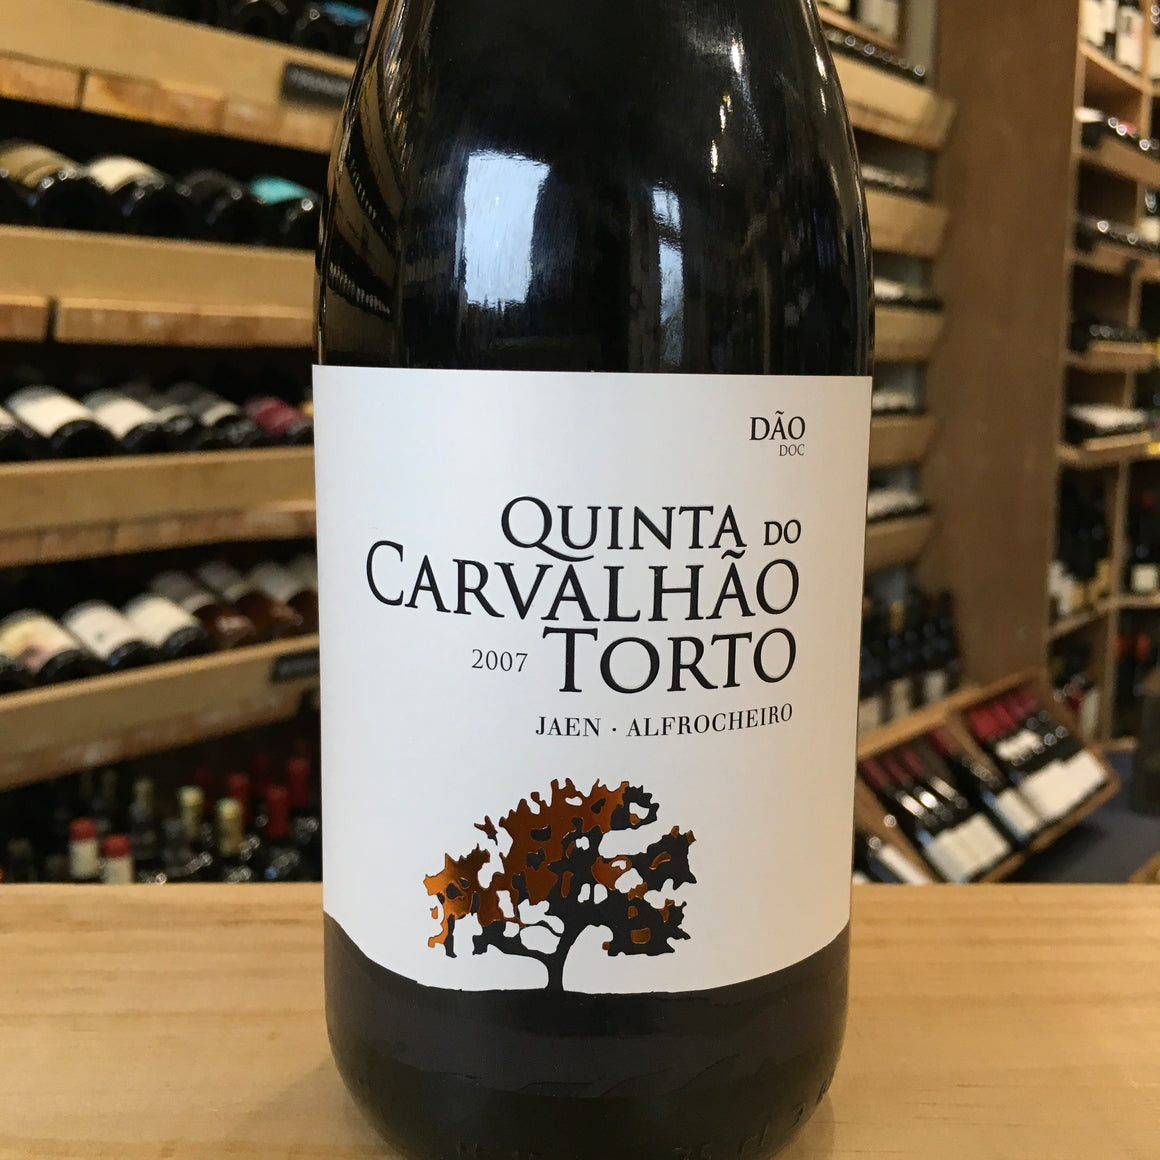 Quinta do Carvalhao Torto 2007